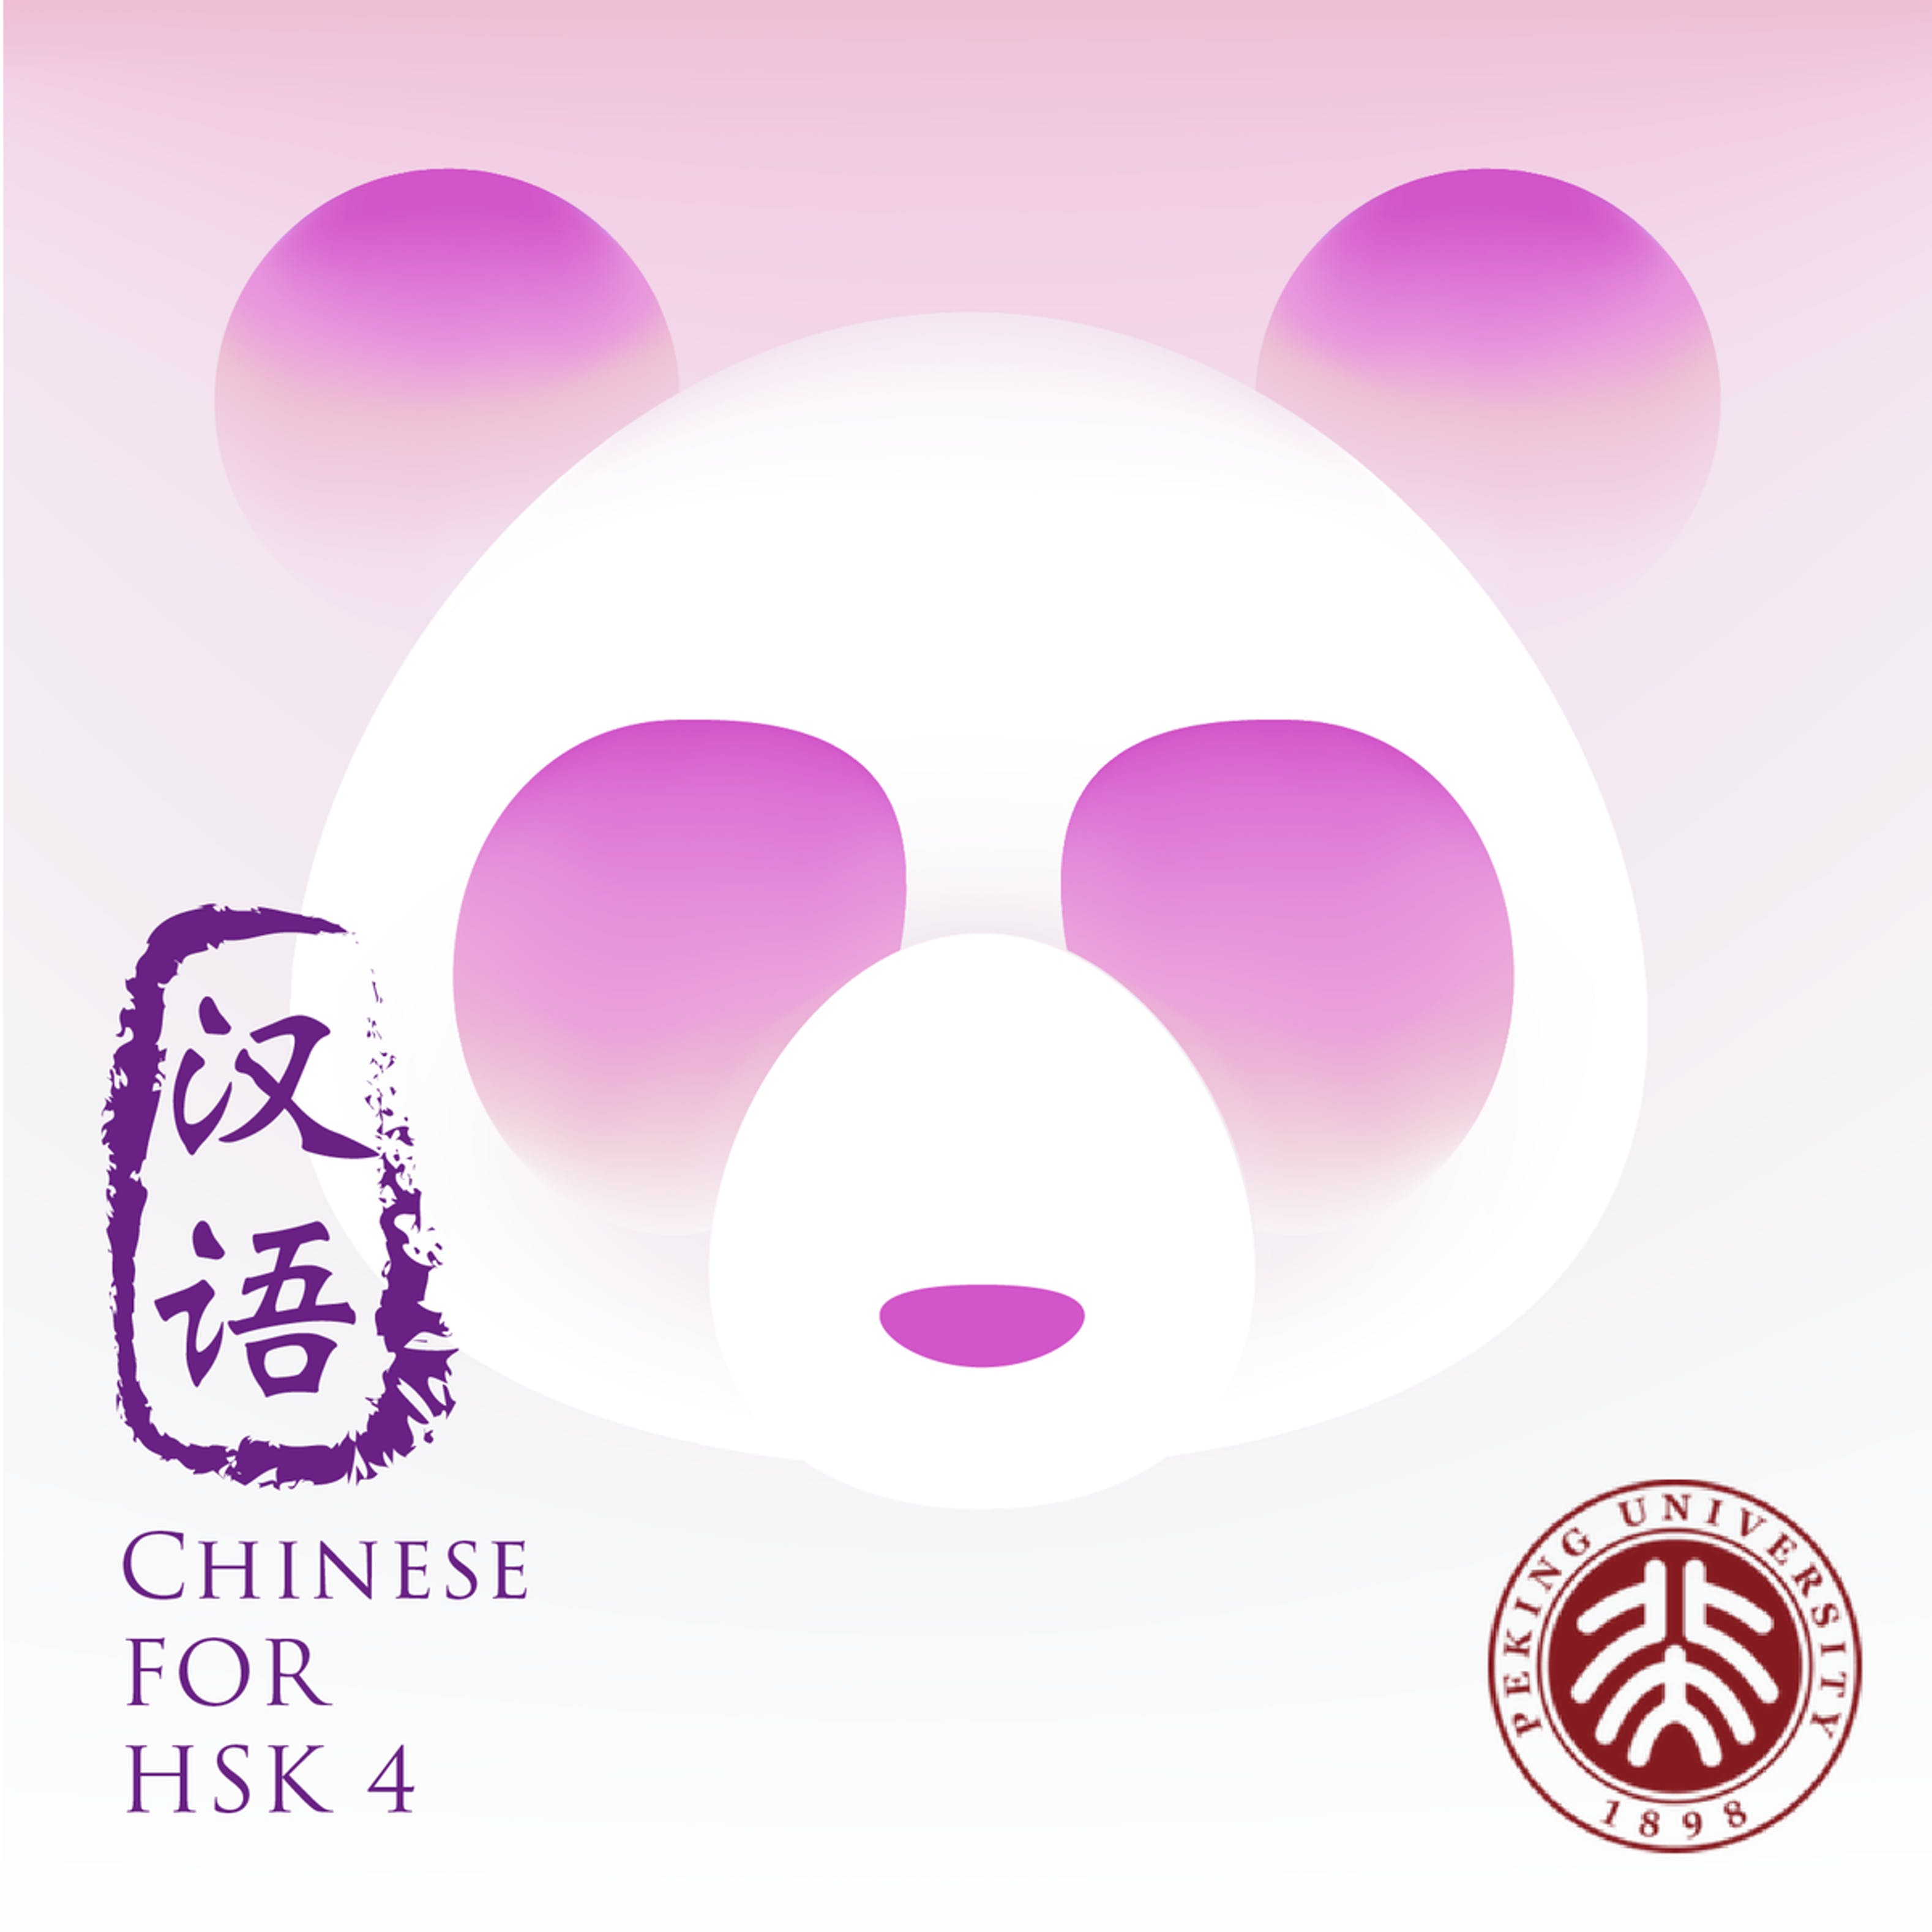 Chinese for HSK 4 | Coursera